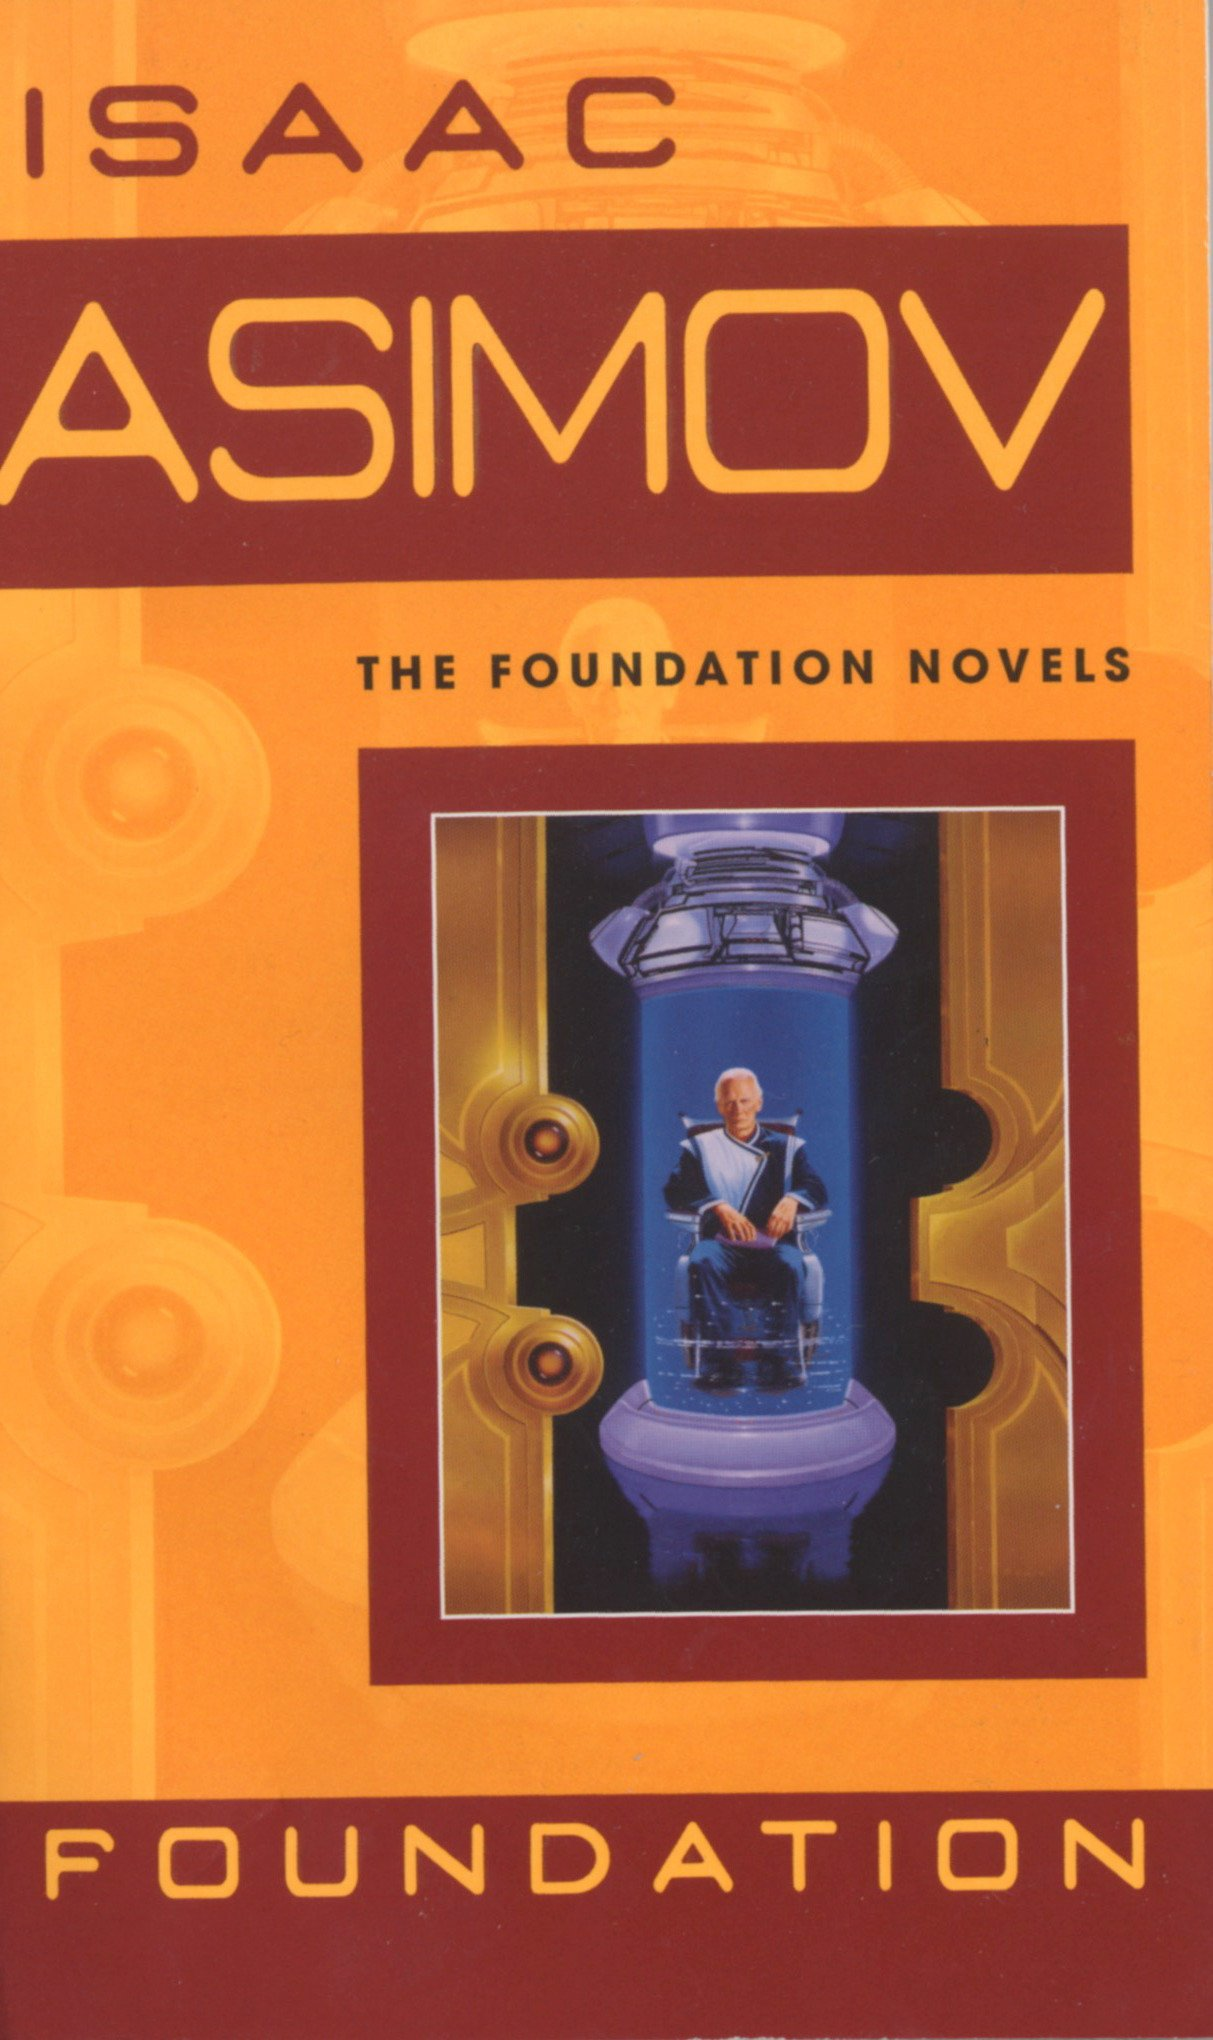 Foundation: Asimov, Isaac: 9780553293357: Amazon.com: Books